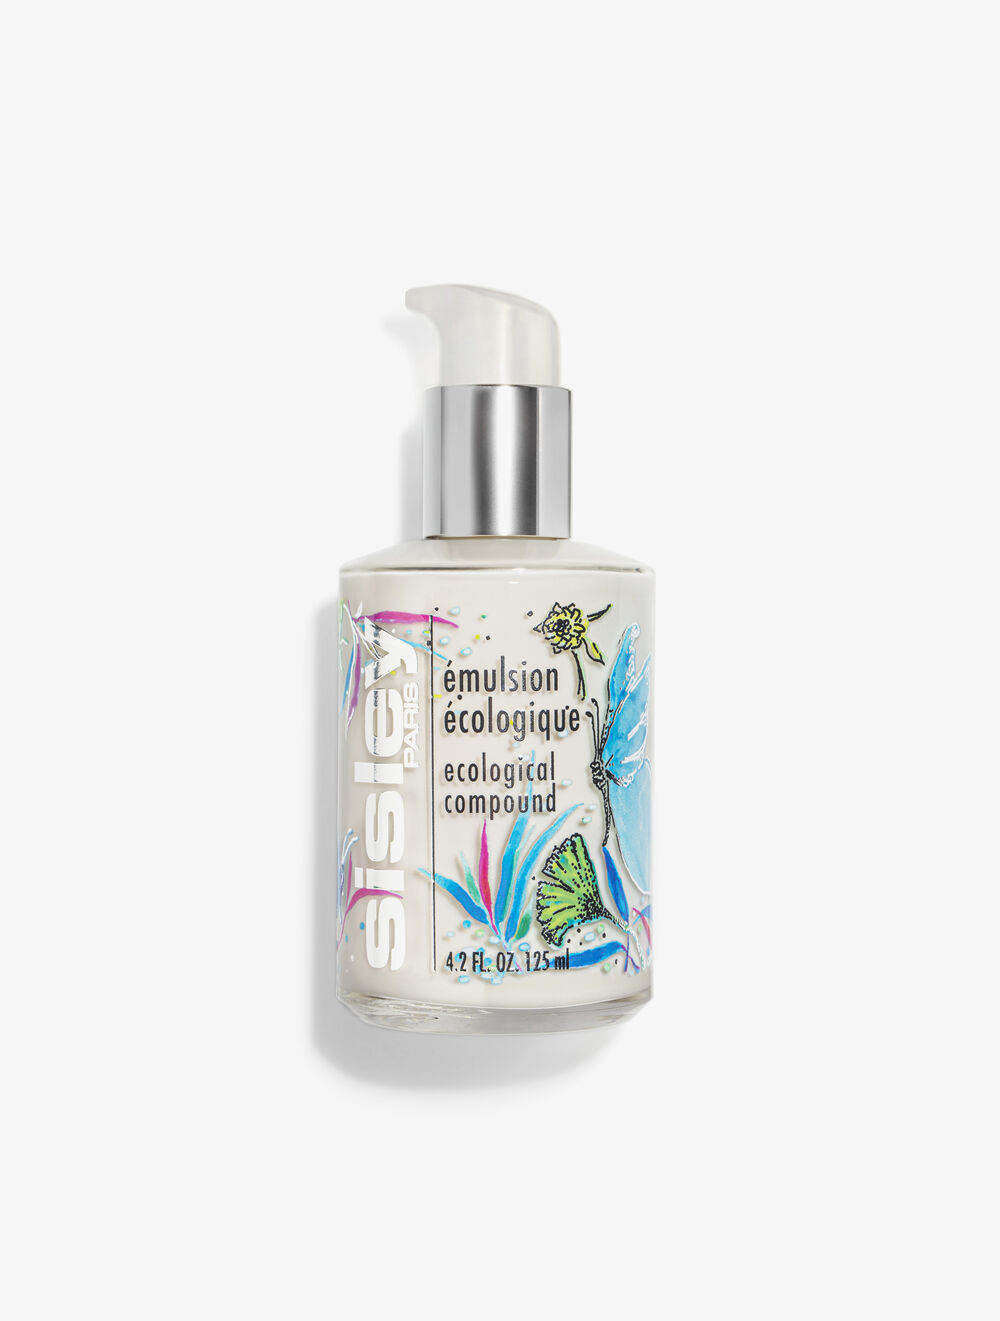 Emulsion Ecologique Limited Edition